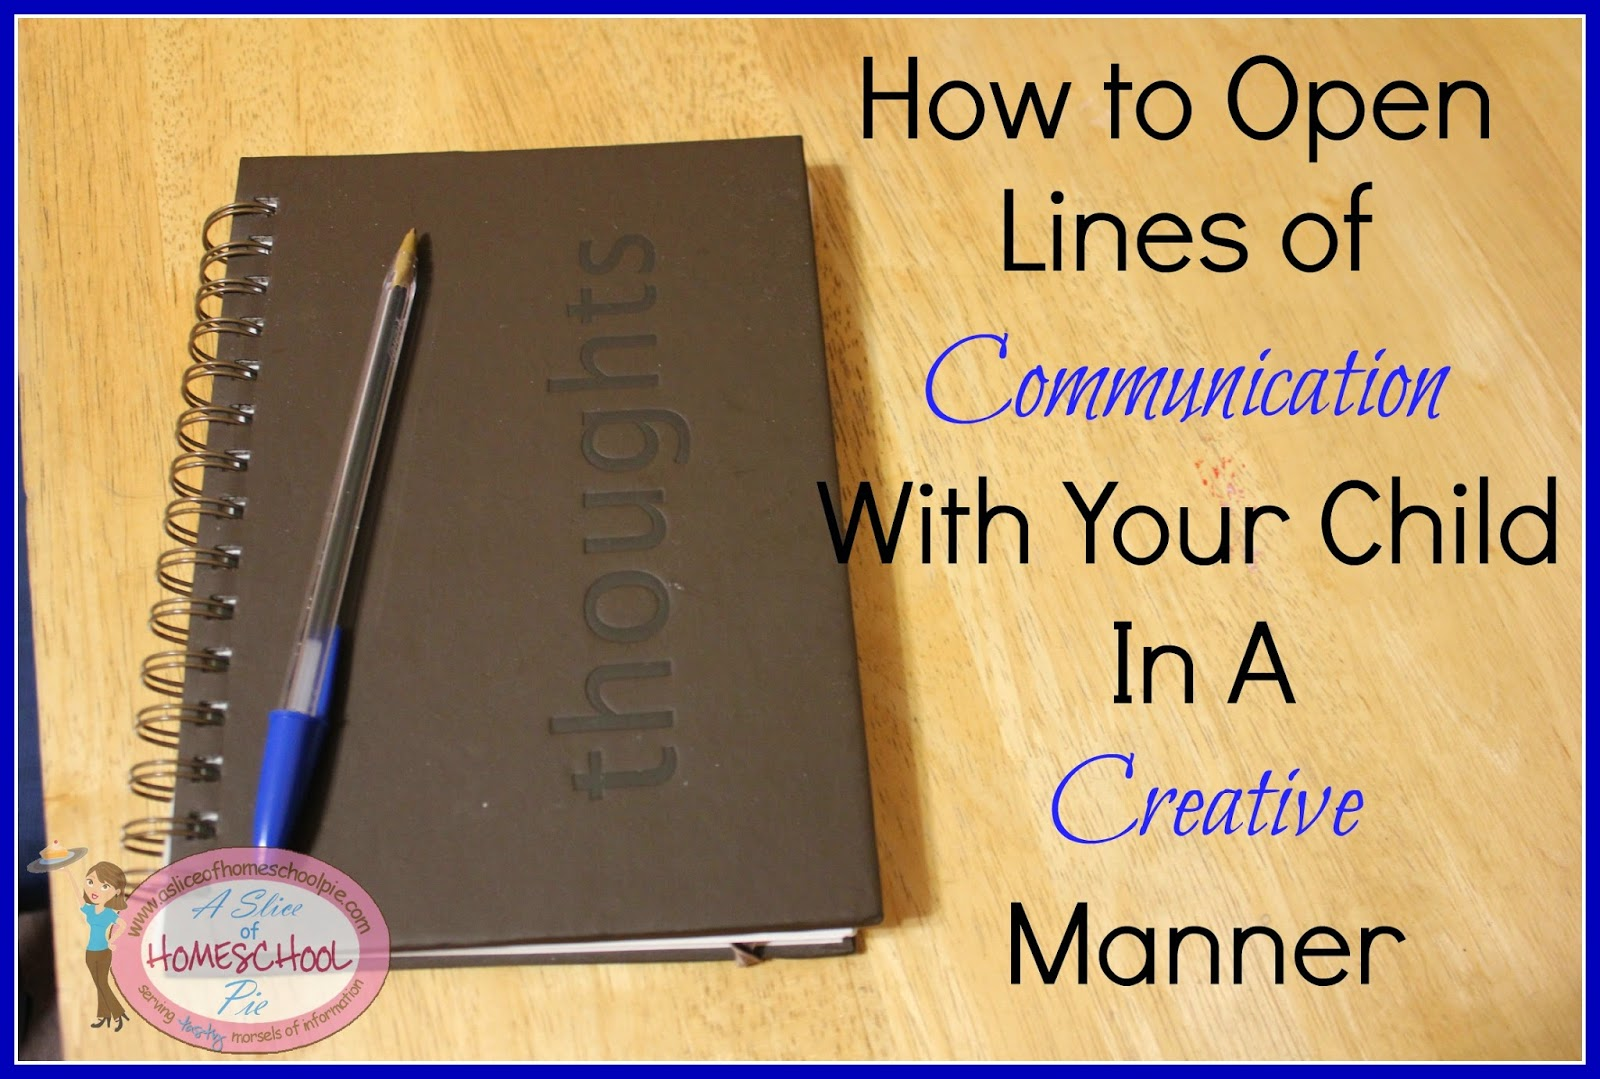 How to Open Lines of Communication With Your Child in a Creative Manner by ASliceOfHomeschoolPie